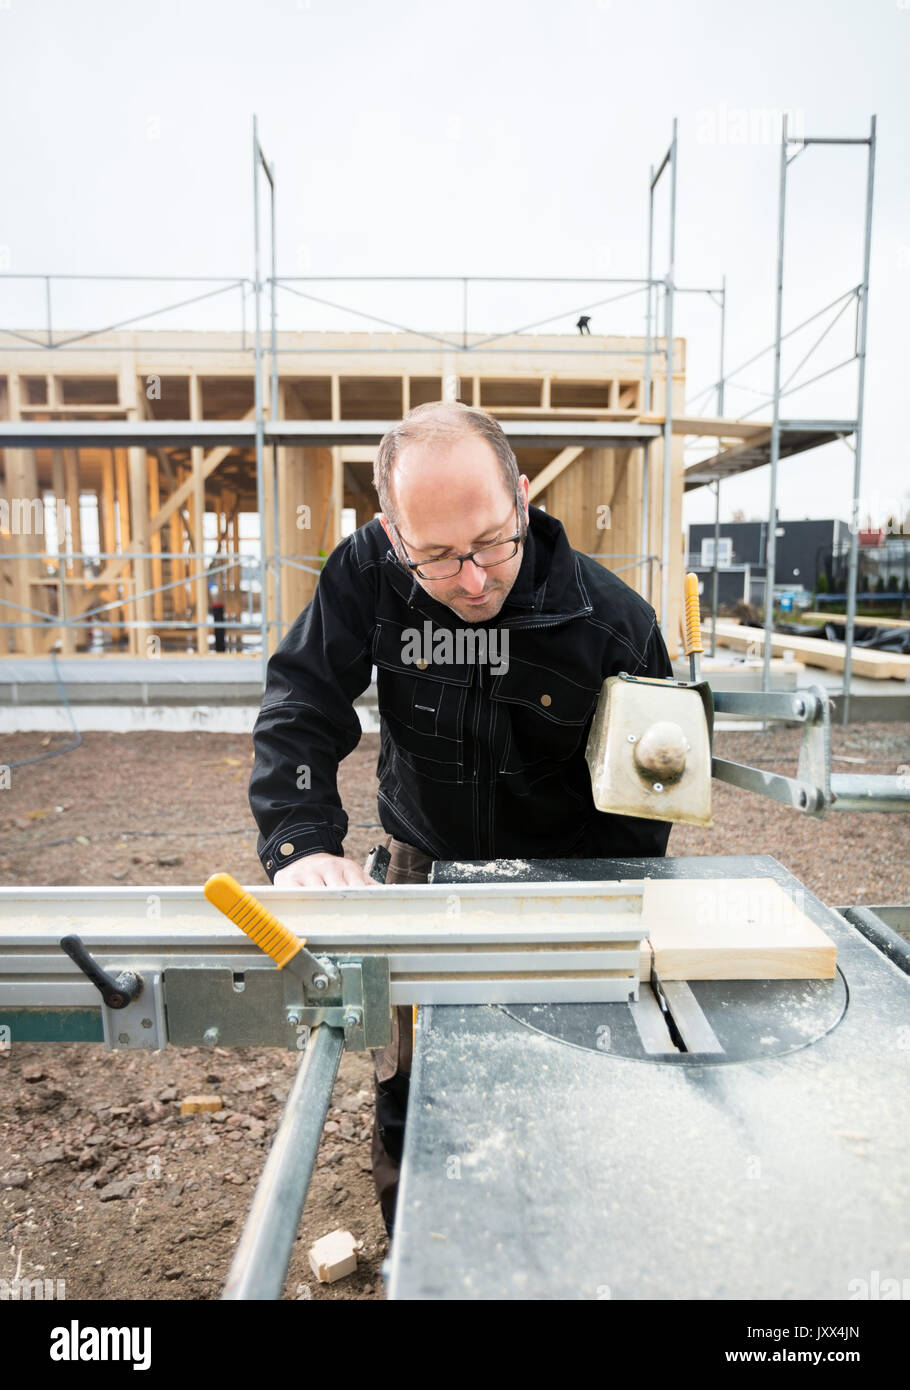 Carpenter Using Table Saw To Cut Wood At Site - Stock Image